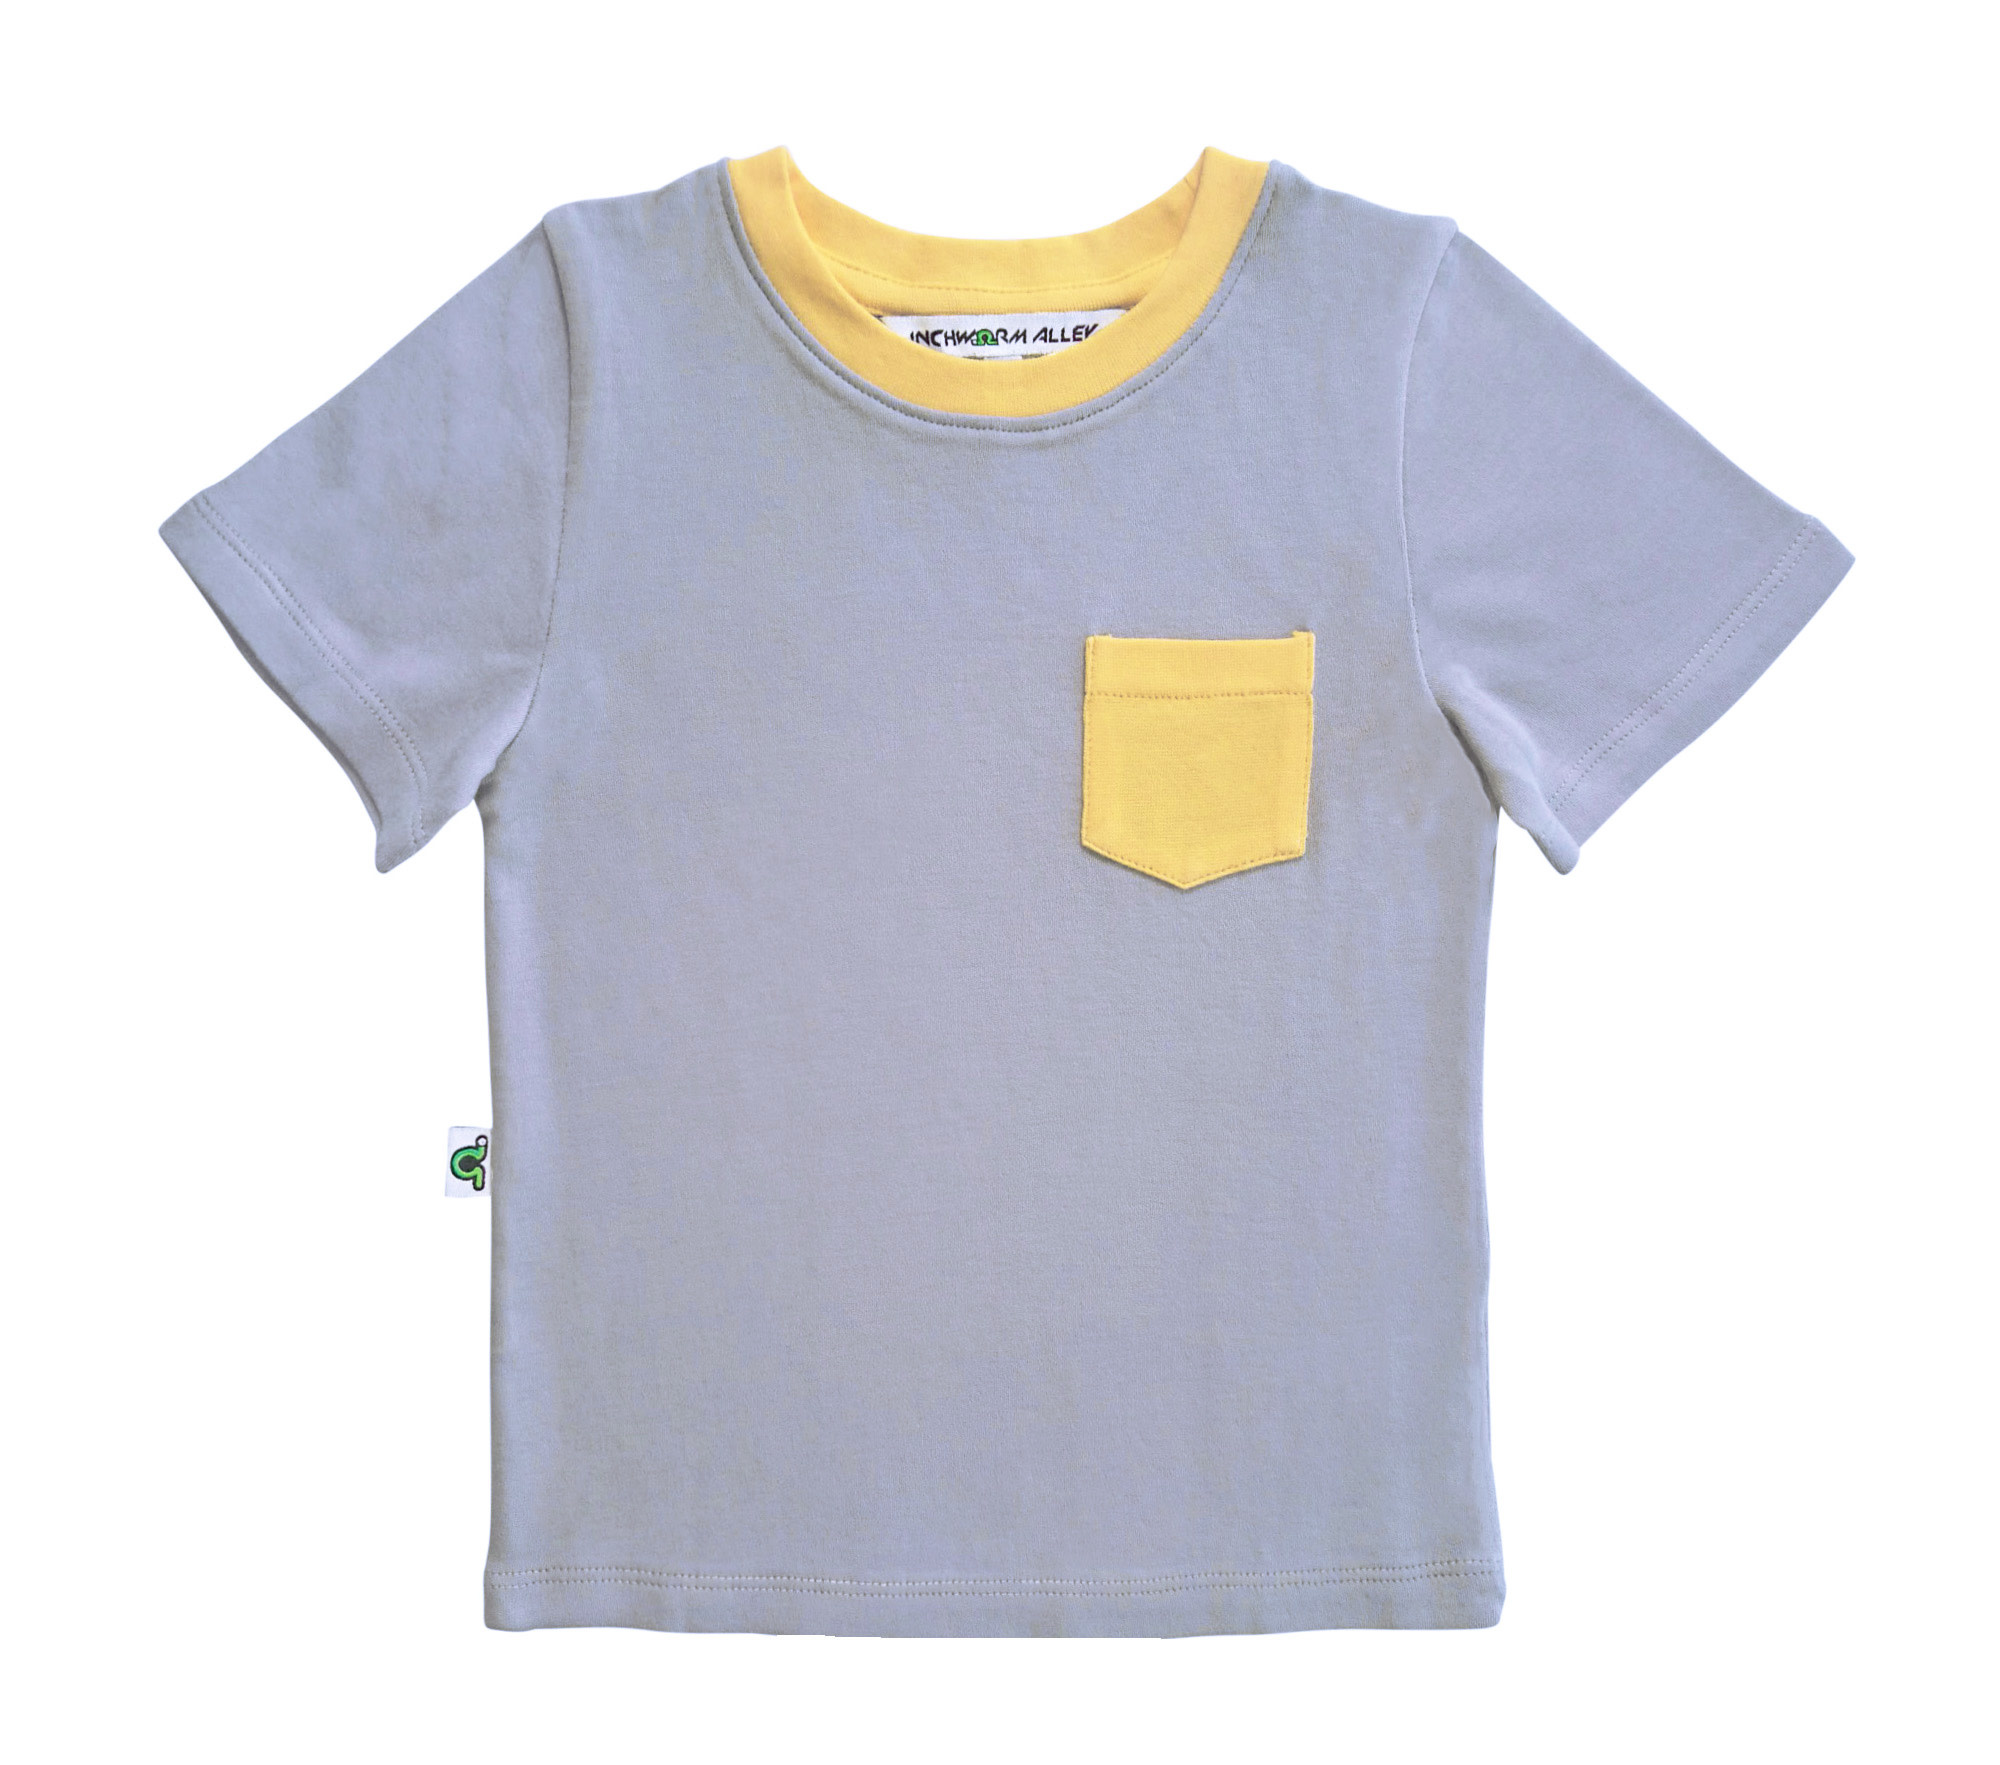 Inchworm Alley Yellow and Grey T-shirt